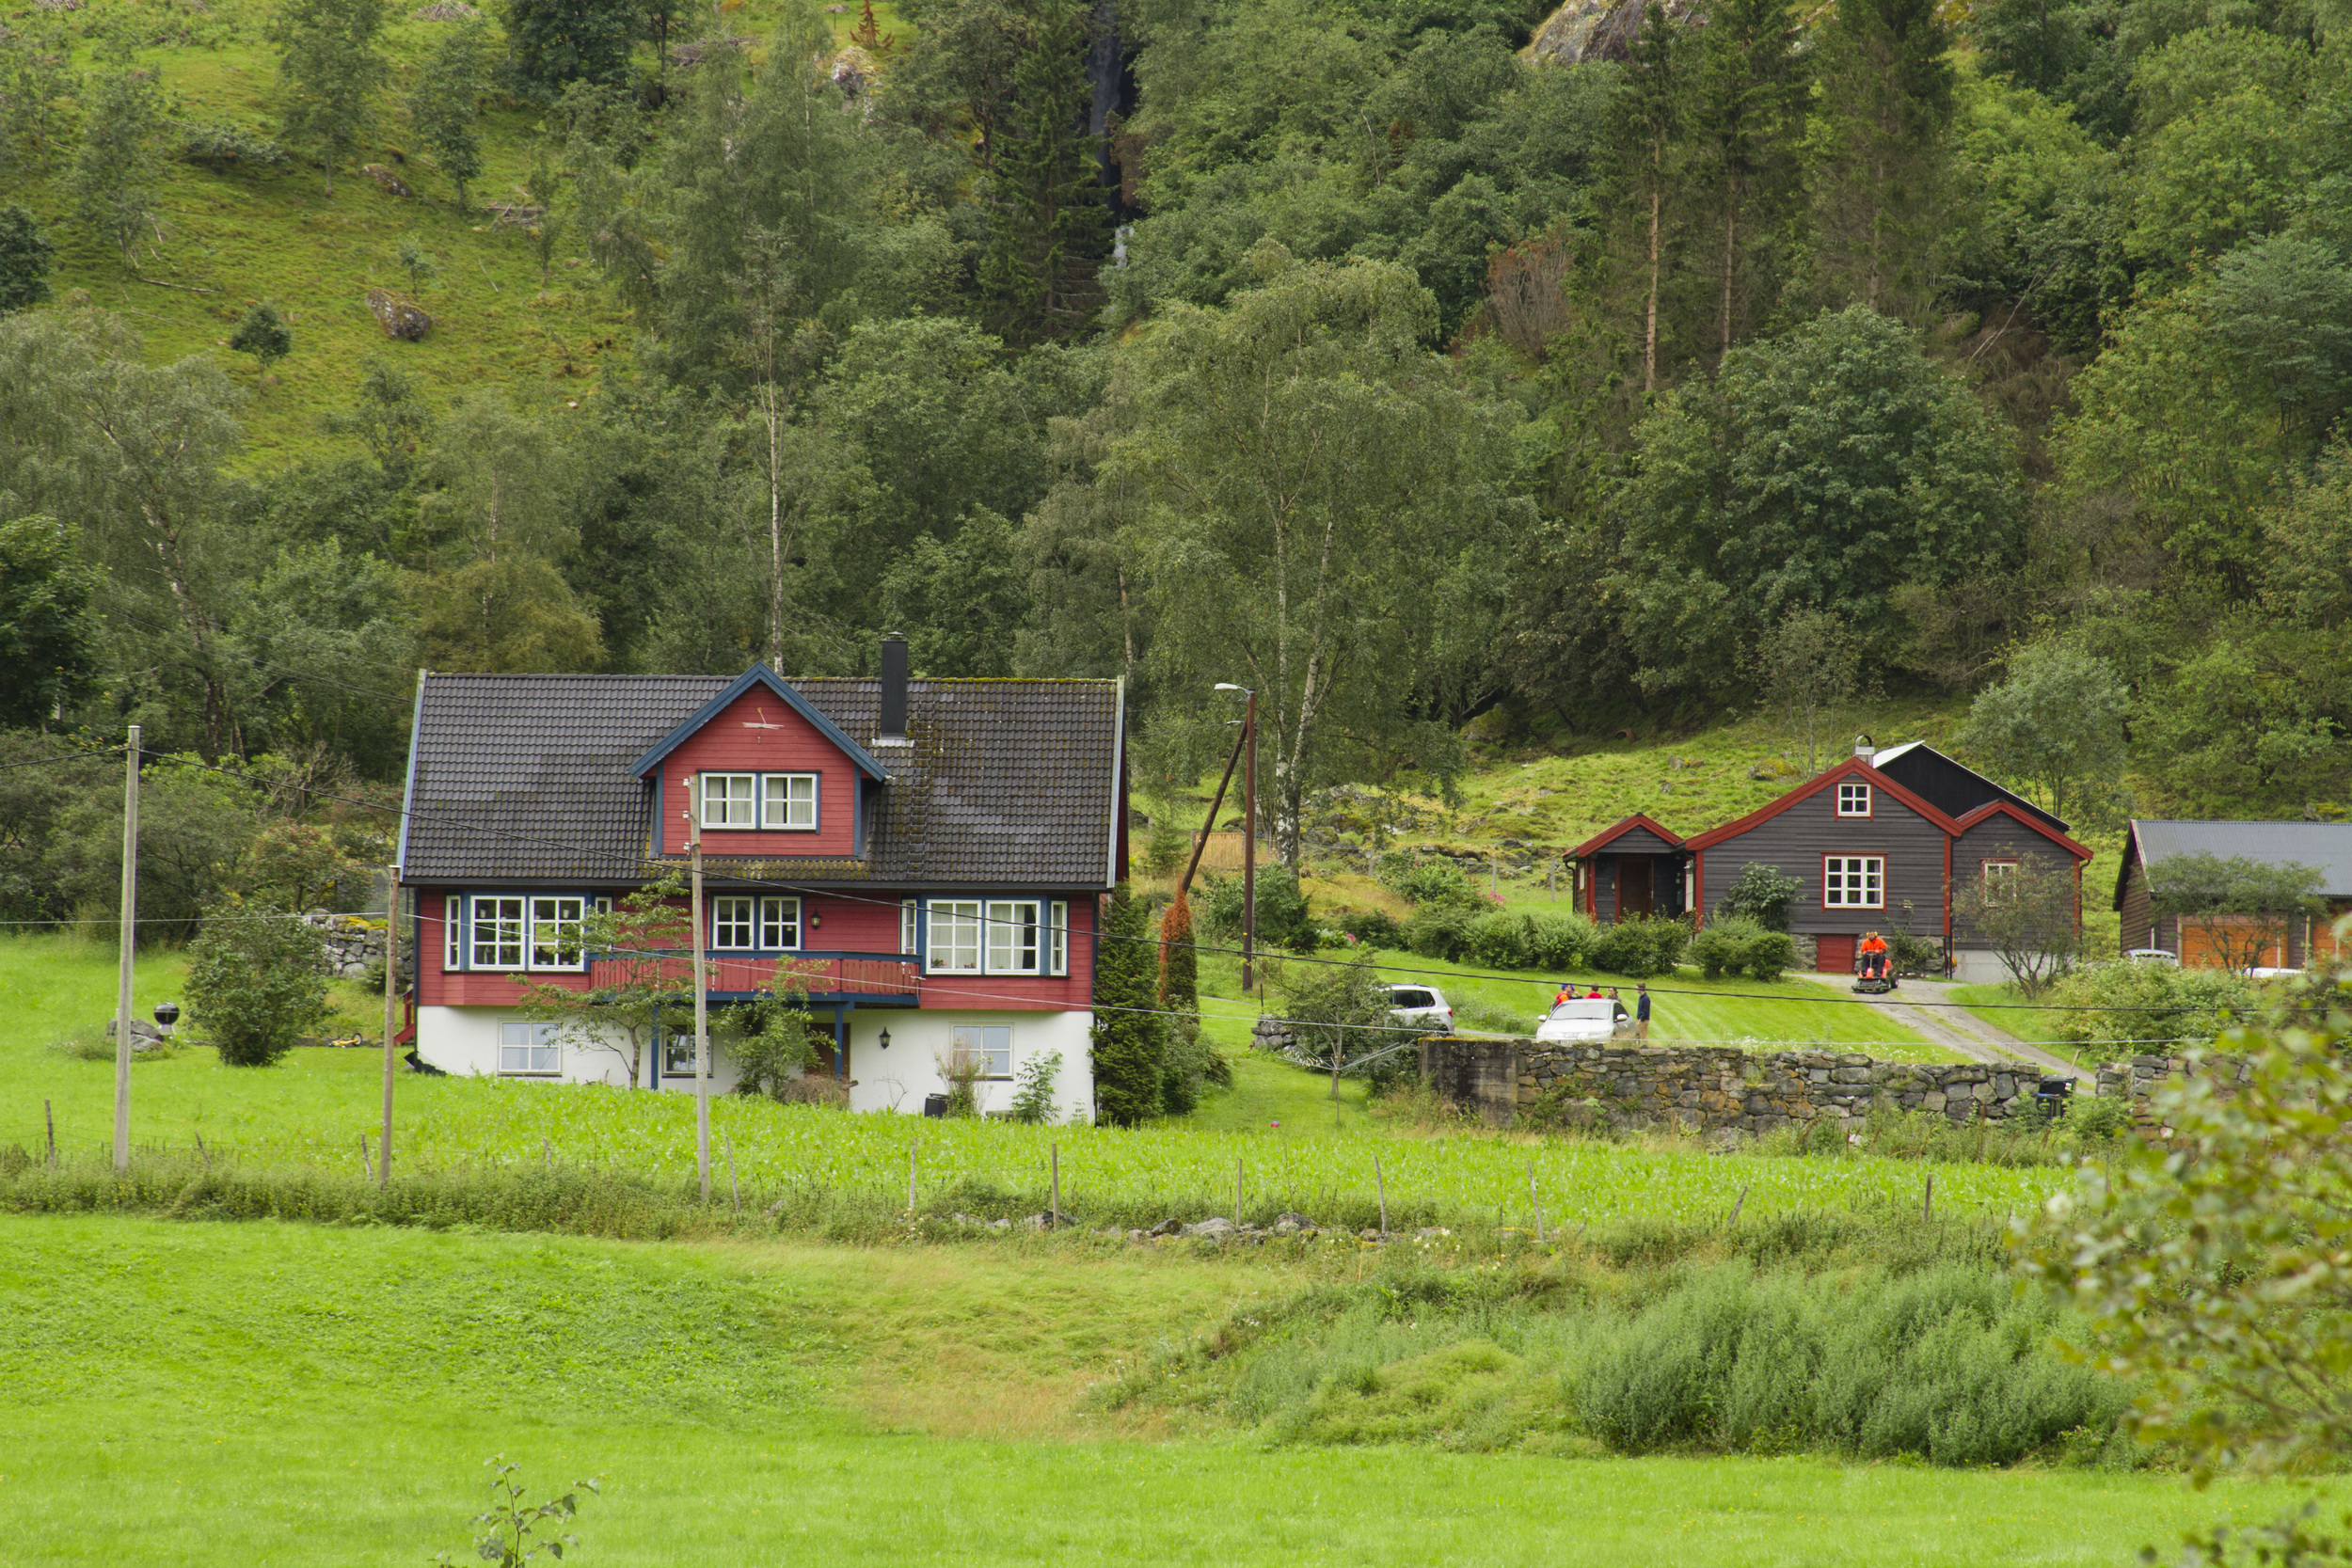 5. The timber Norwegian houses are paired in muted colours which enable them to 'fit' into the surrounding scenery without being unsightly.